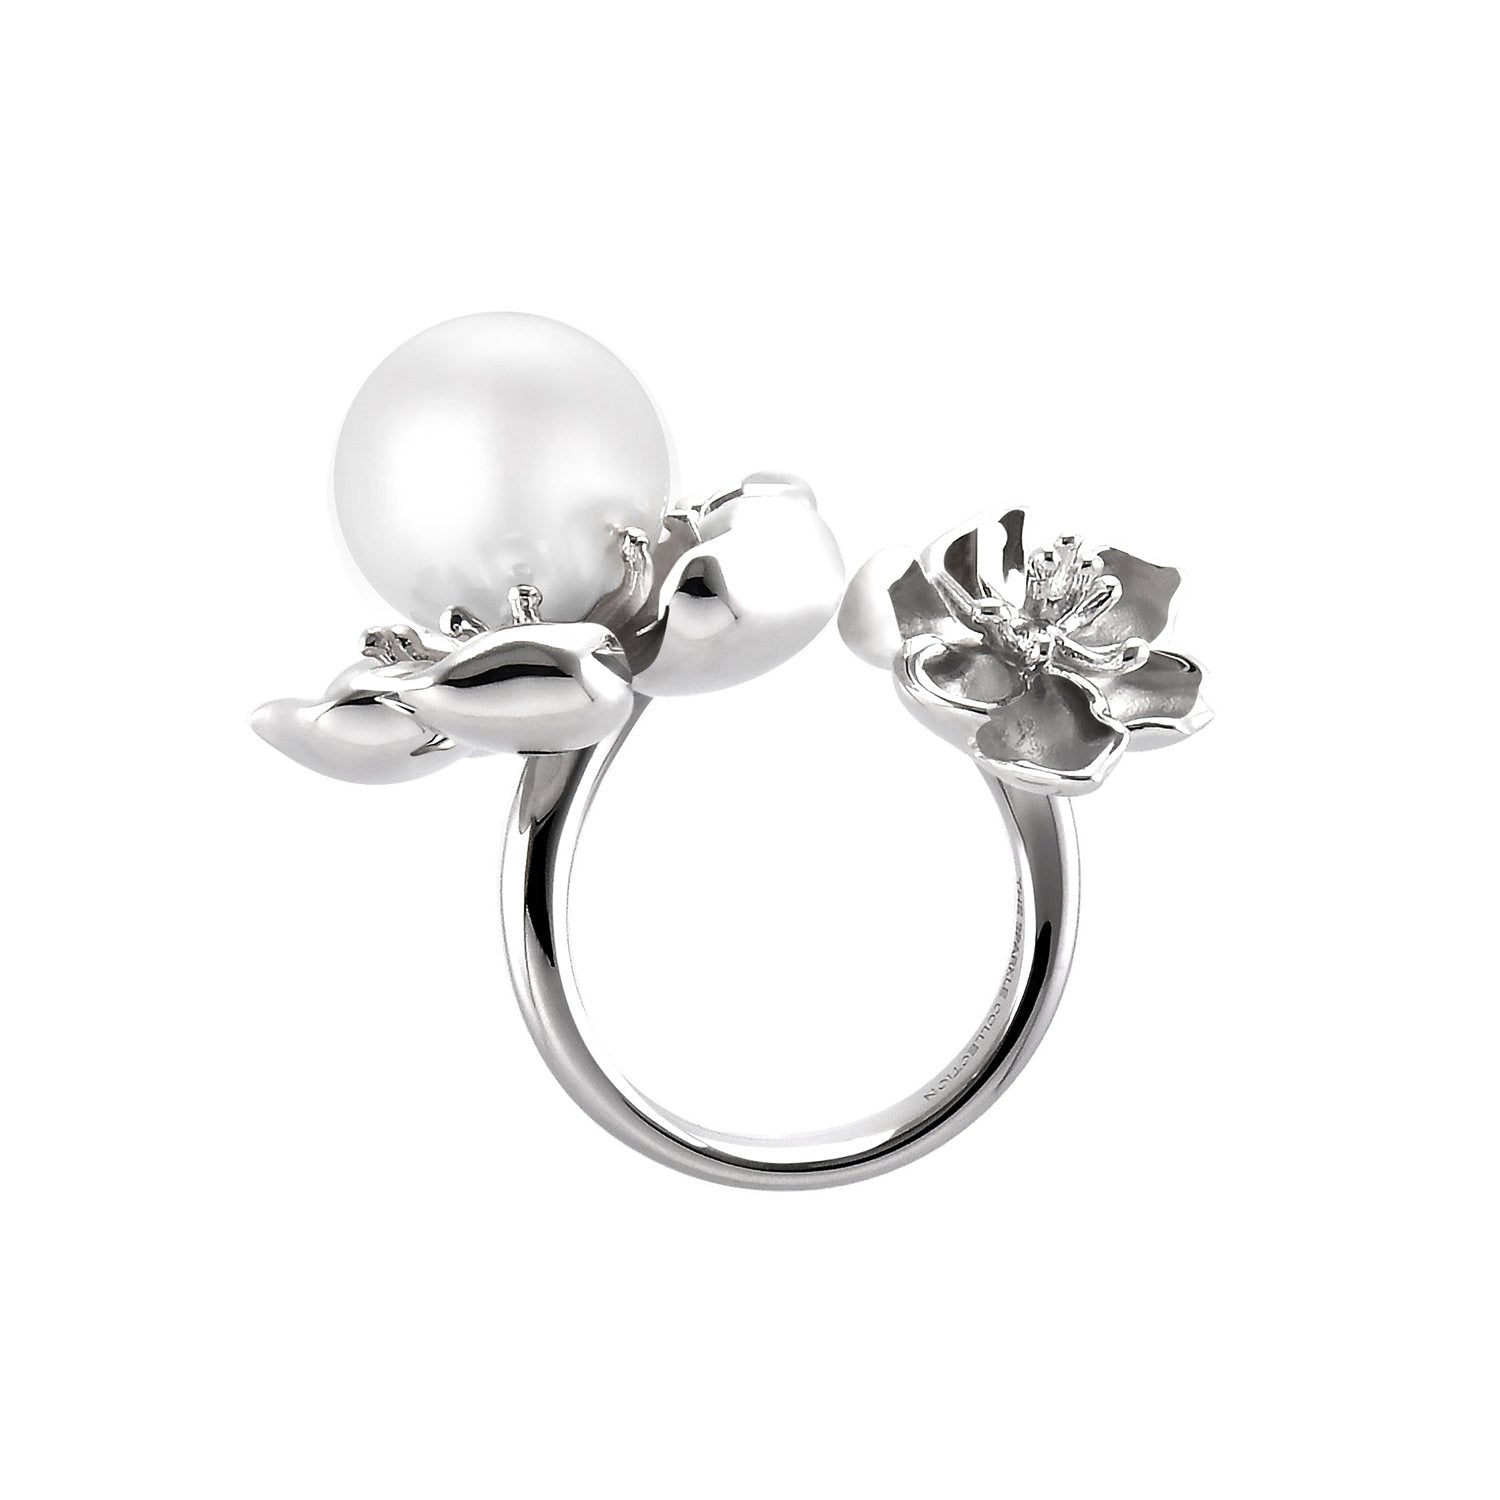 【PEONY】925 Sterling Silver Ring with Crystal Pearl - THE SPARKLE COLLECTION by GERMAN POOL